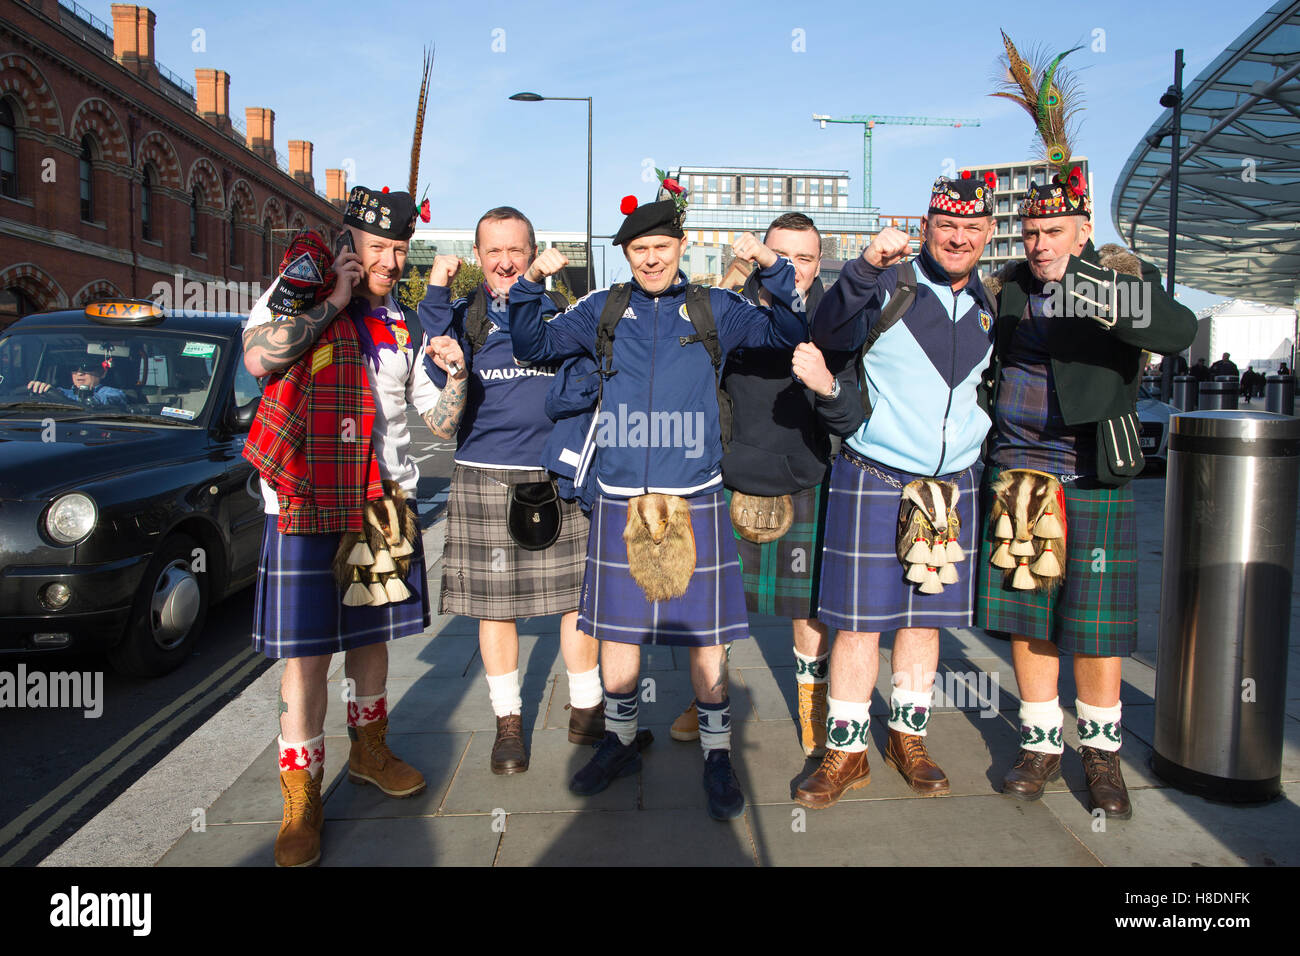 London, UK. 11th Nov, 2016. Scottish Football fans arrive for tonights game in London. Friday 11.11.2016 Large numbers Stock Photo